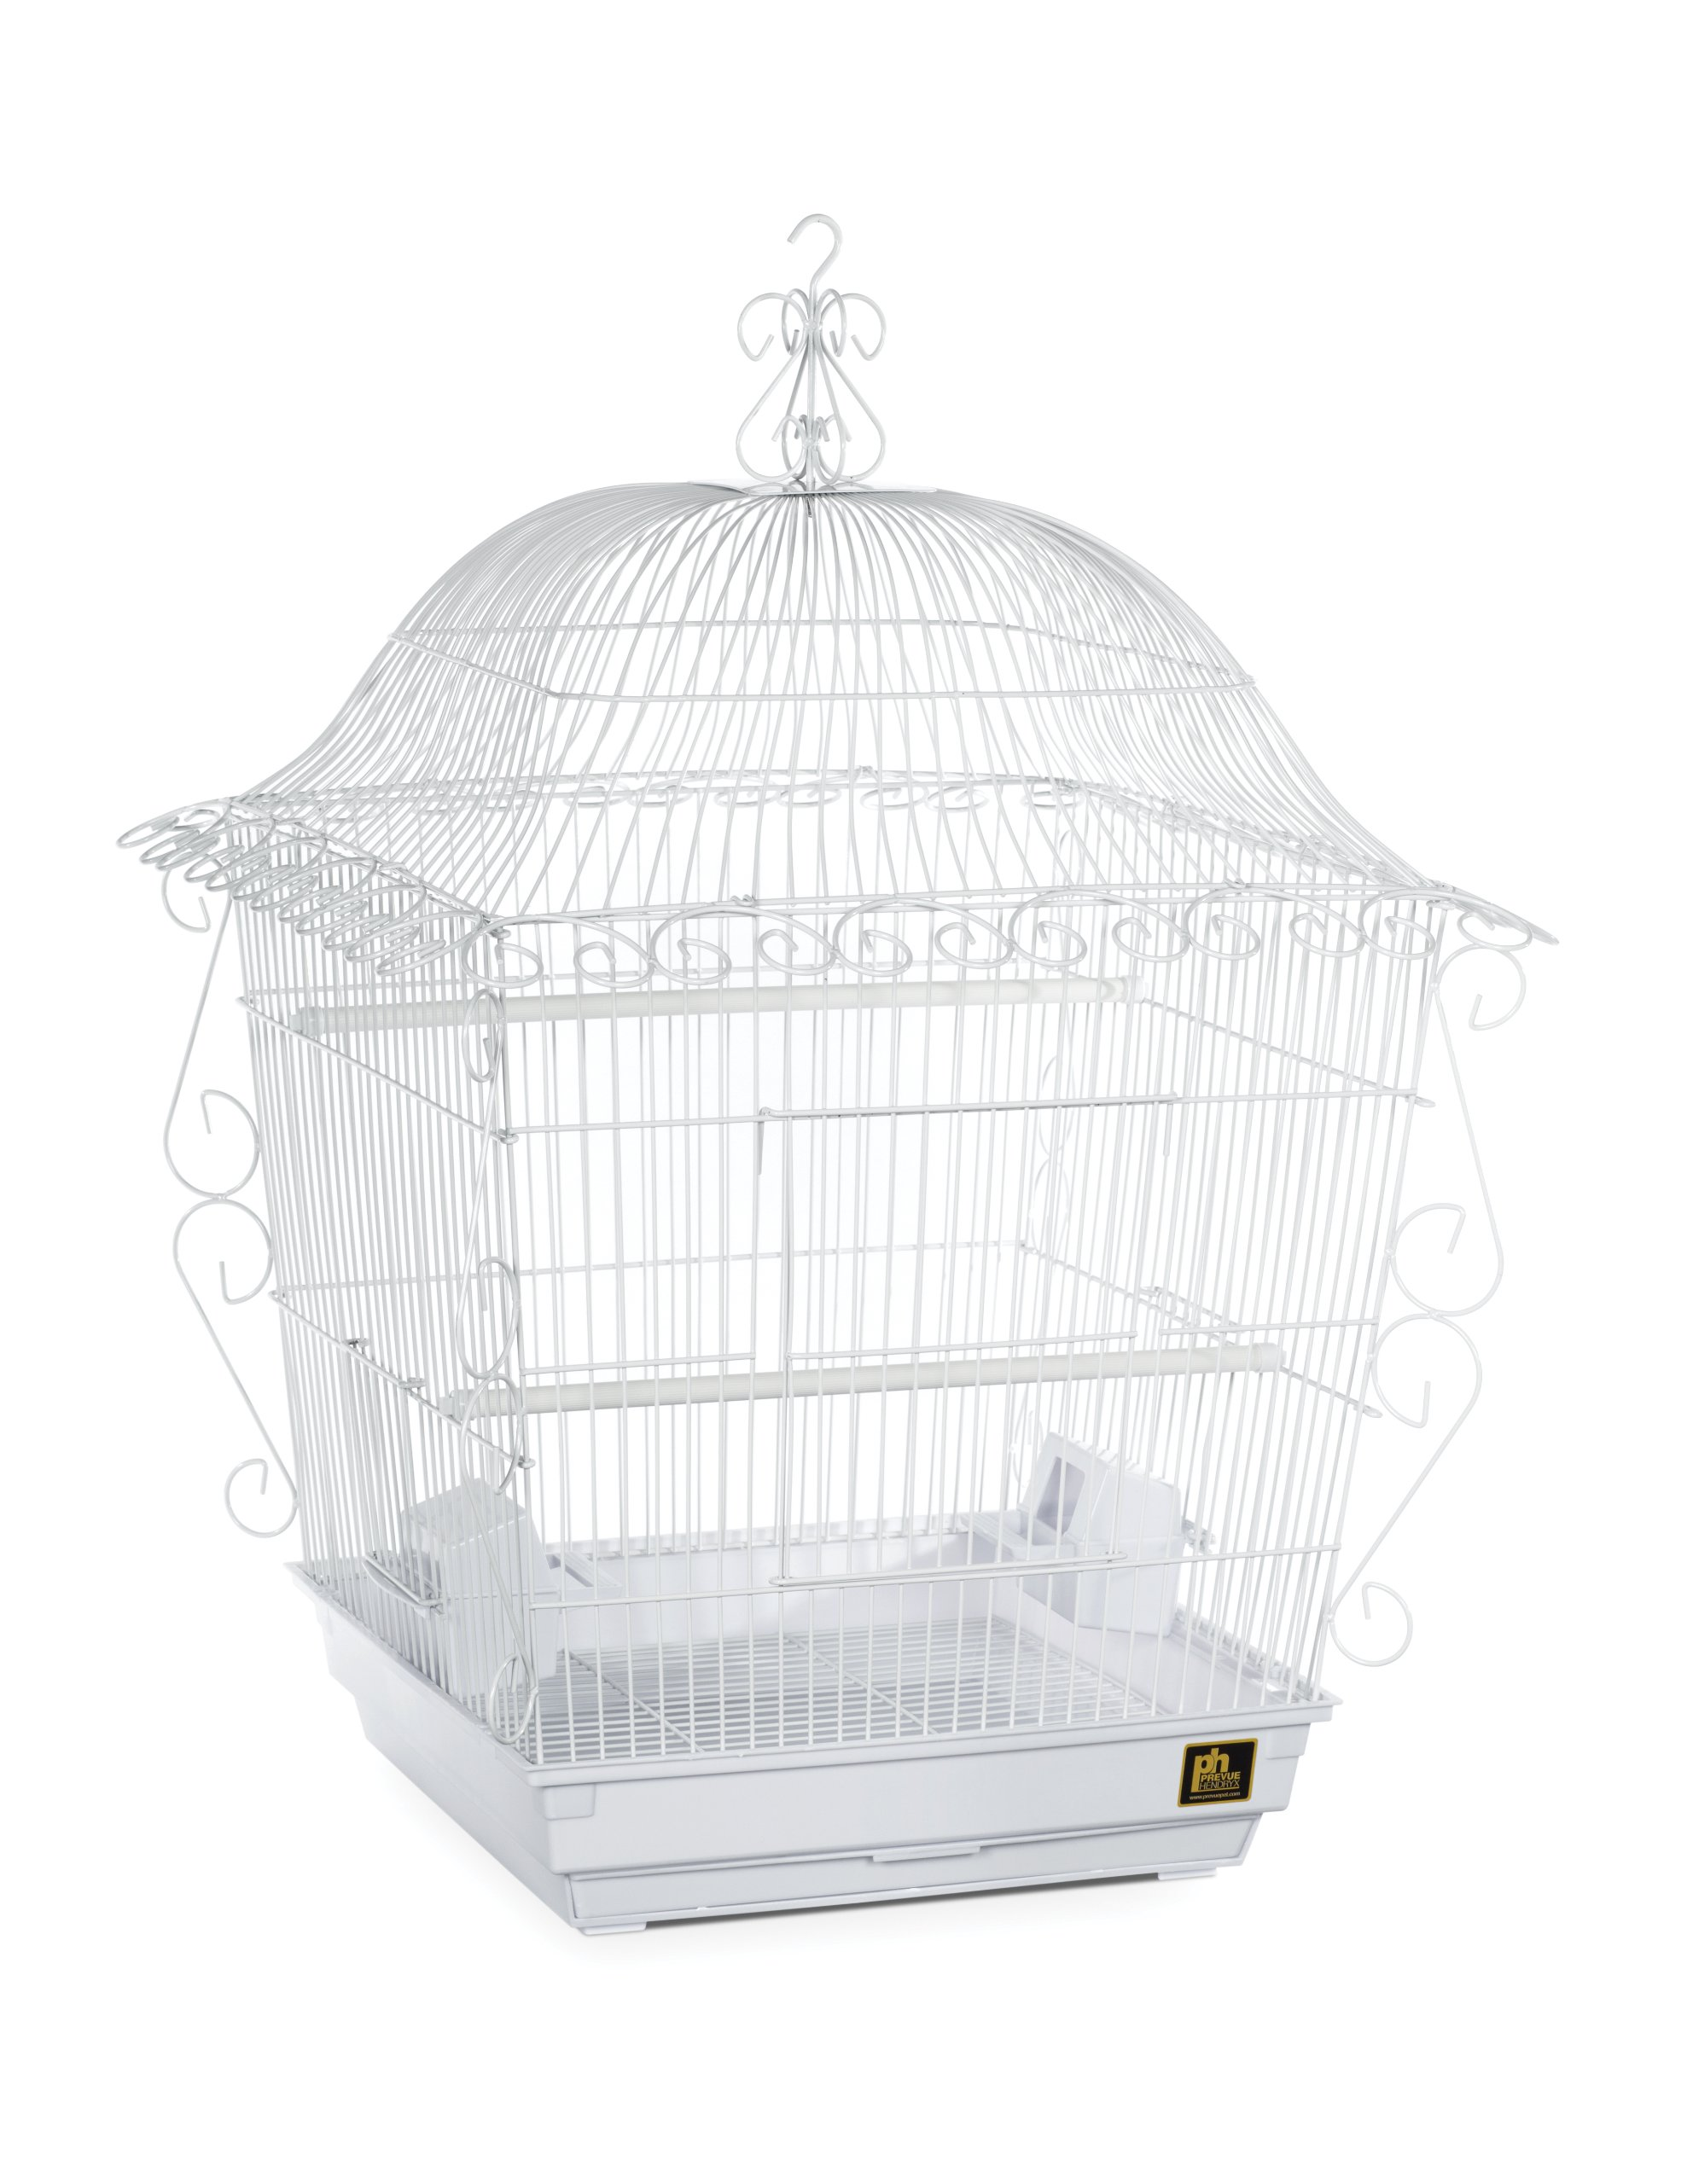 Prevue Pet Products Jumbo Scrollwork Bird Cage 220W White, 18-Inch by 18-Inch by 25-Inch by Prevue Hendryx